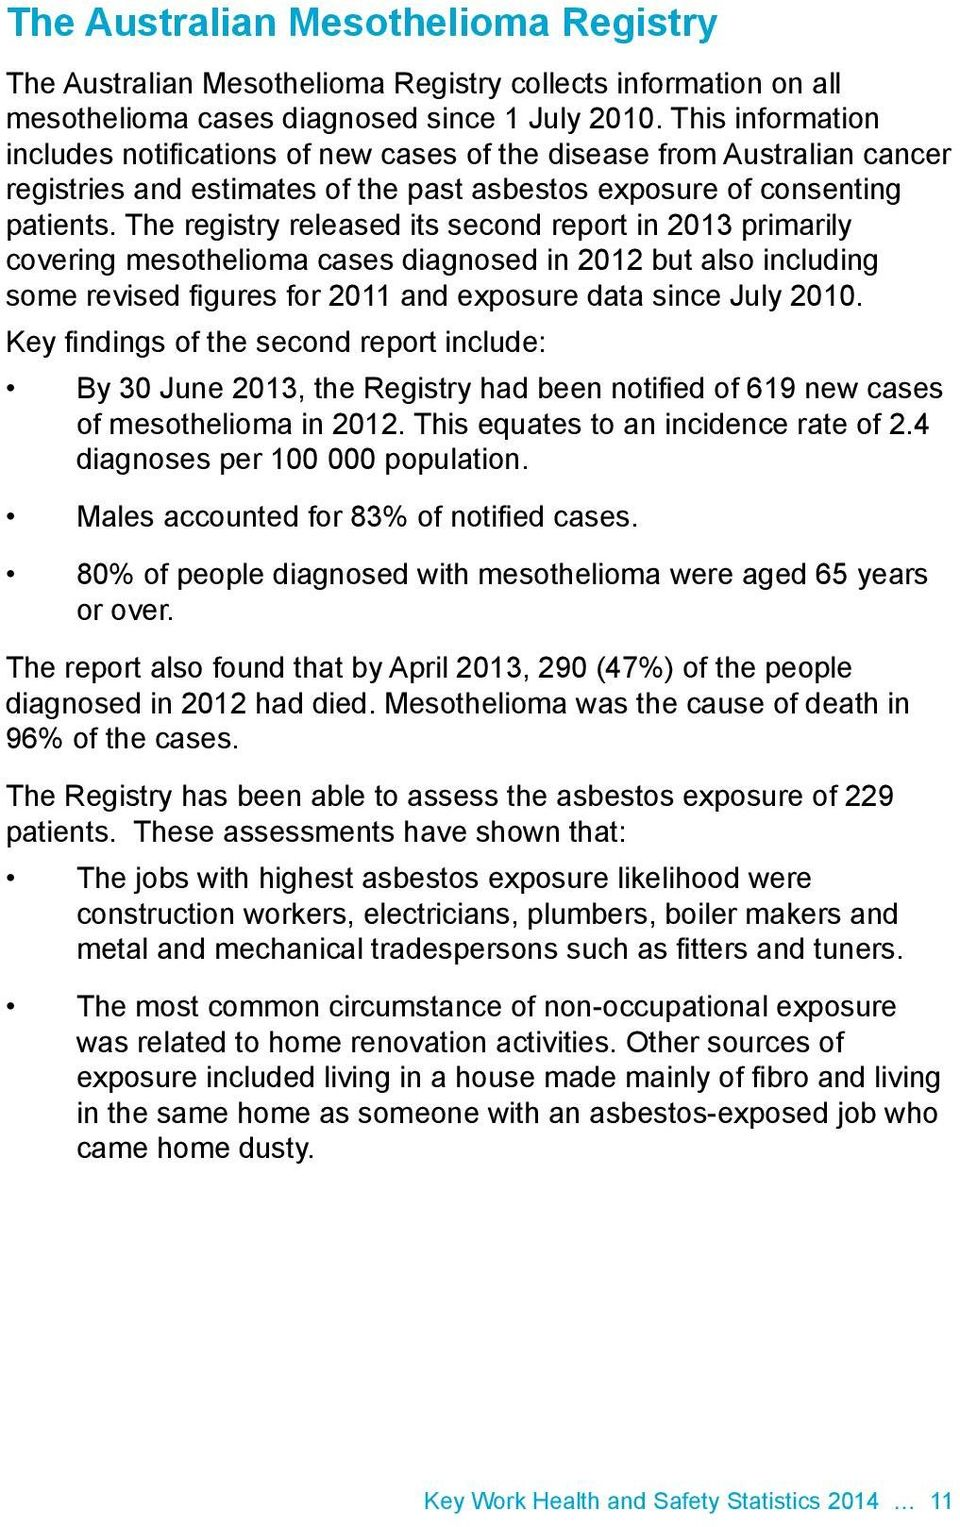 The registry released its second report in 2013 primarily covering mesothelioma cases diagnosed in 2012 but also including some revised figures for 2011 and exposure data since July 2010.